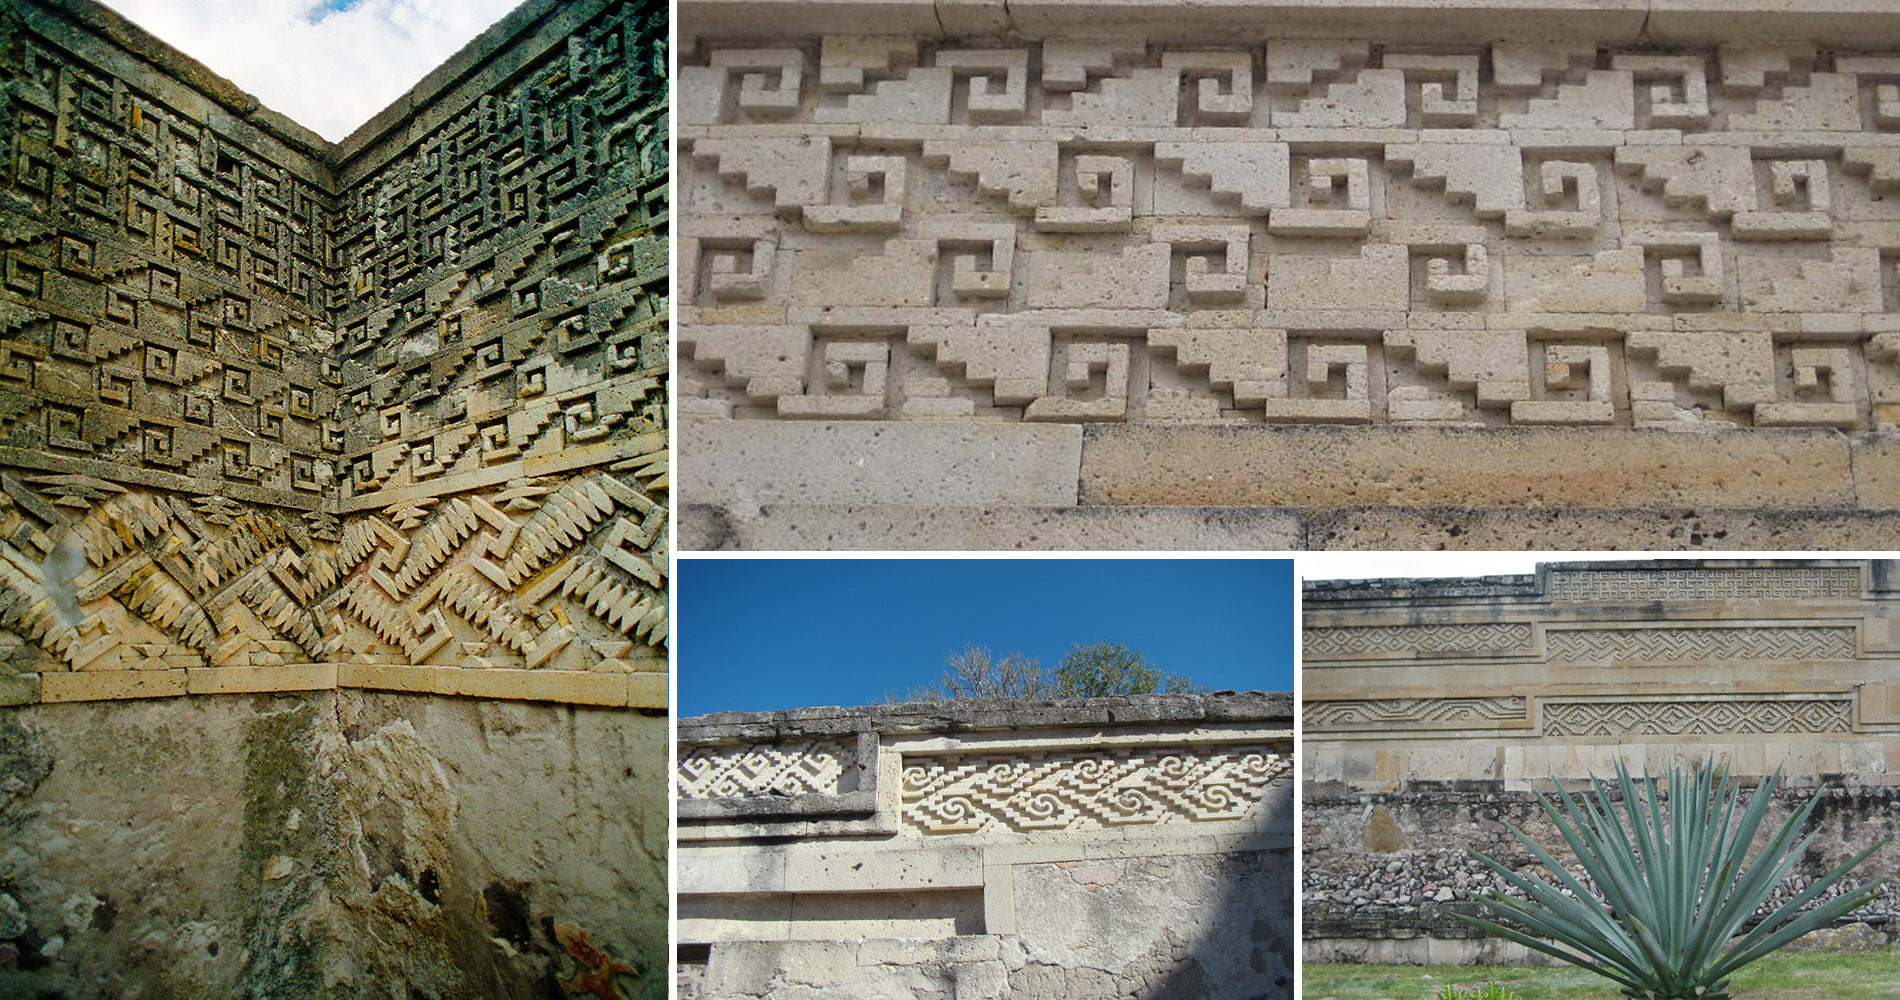 images from Mitla, Oaxaca